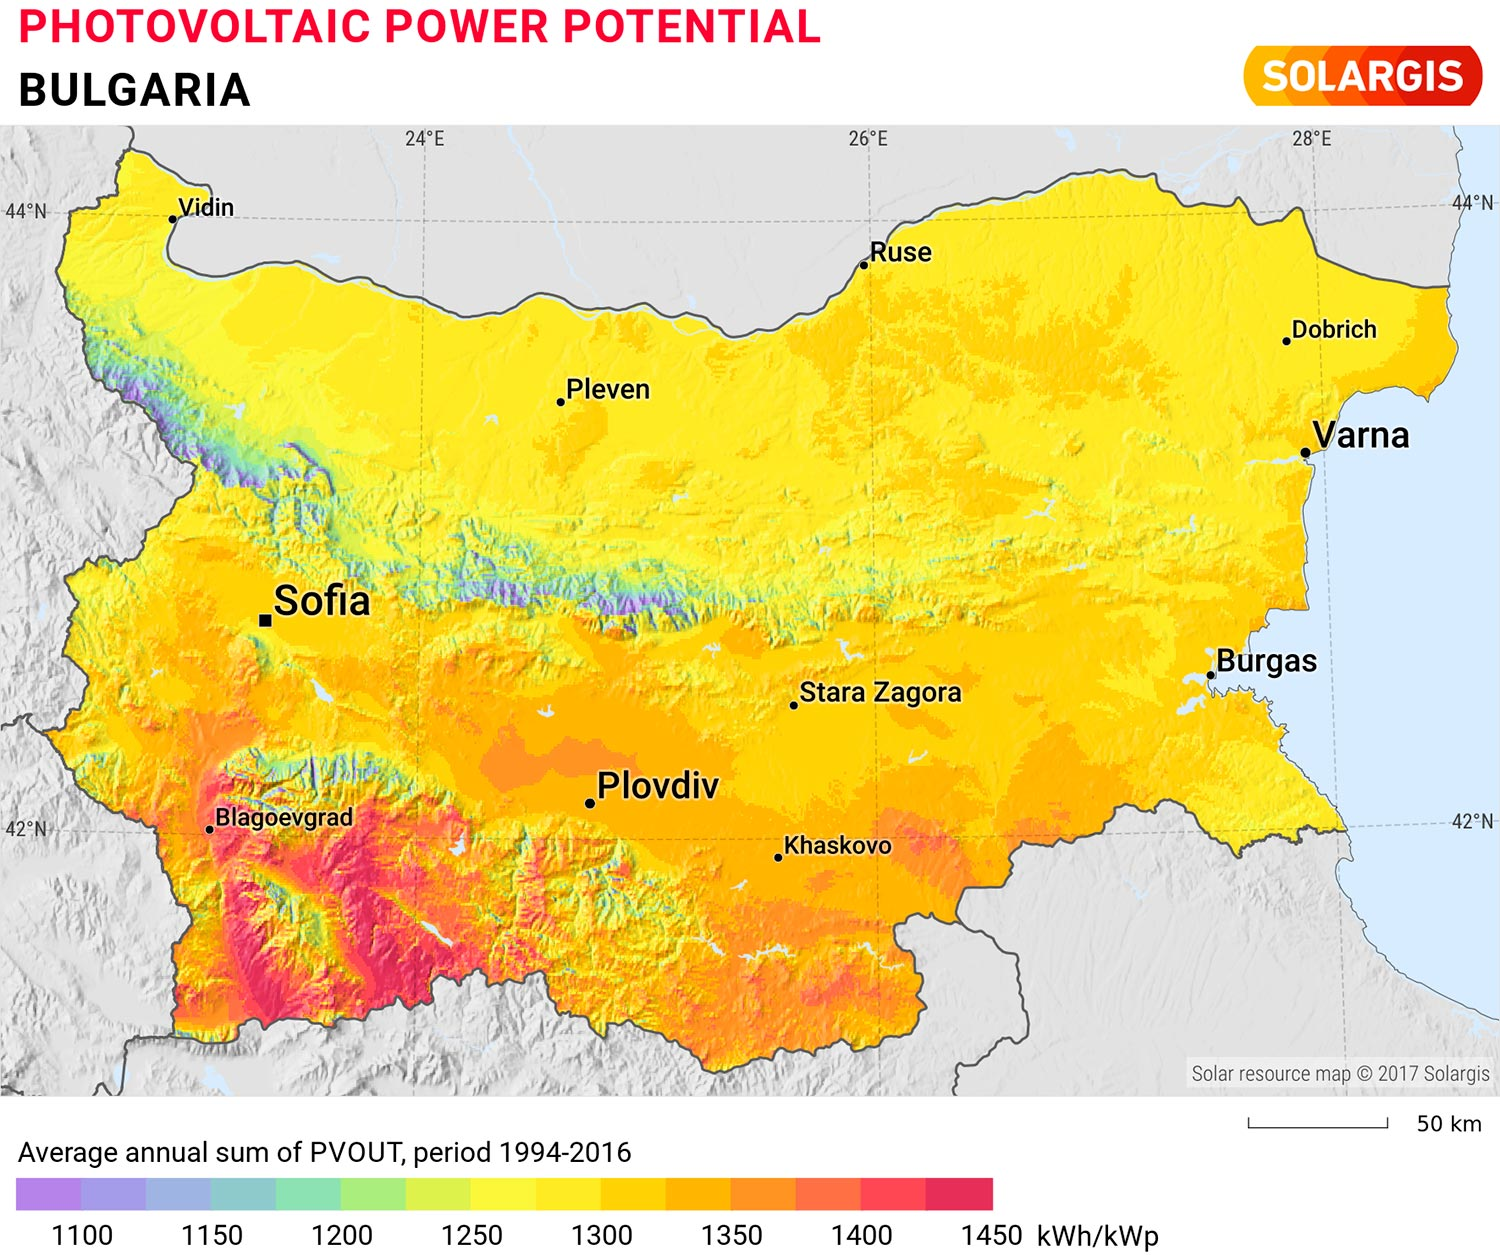 Map of the photovoltaic potential of Bulgaria